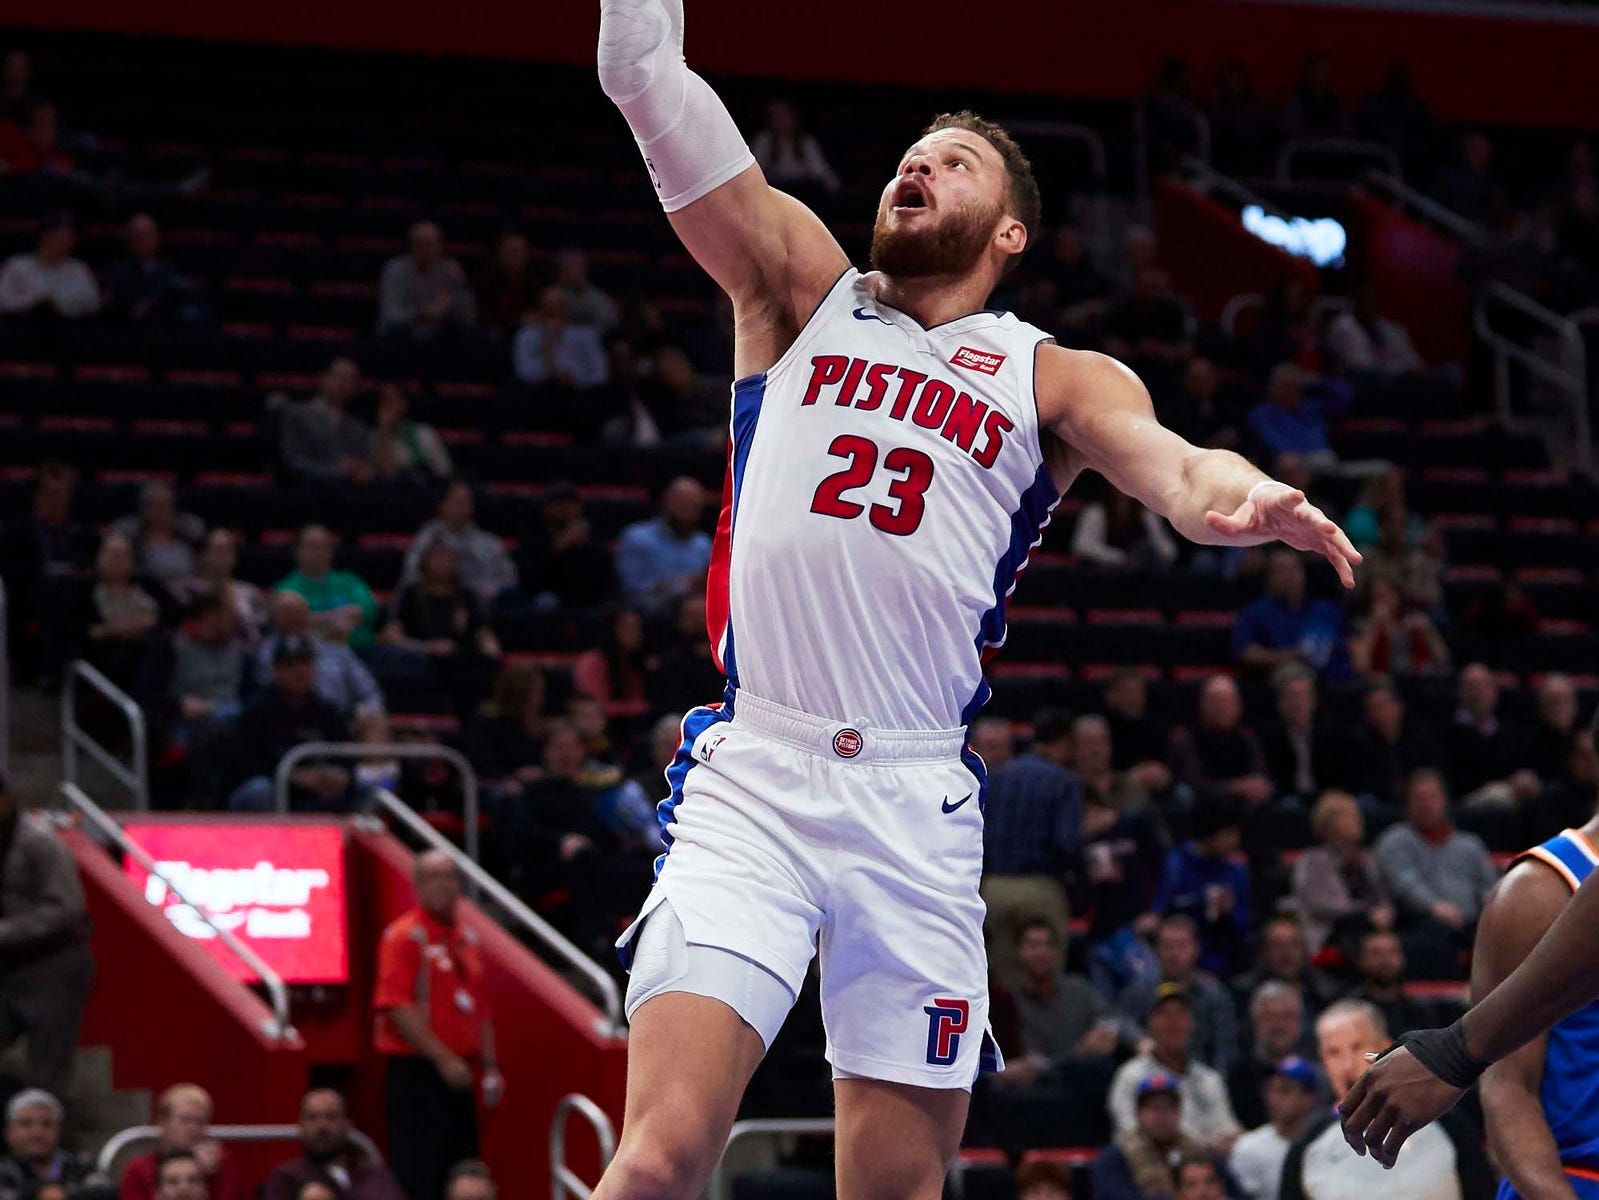 Detroit Pistons forward Blake Griffin (23) goes to the basket in the first half against the New York Knicks at Little Caesars Arena.